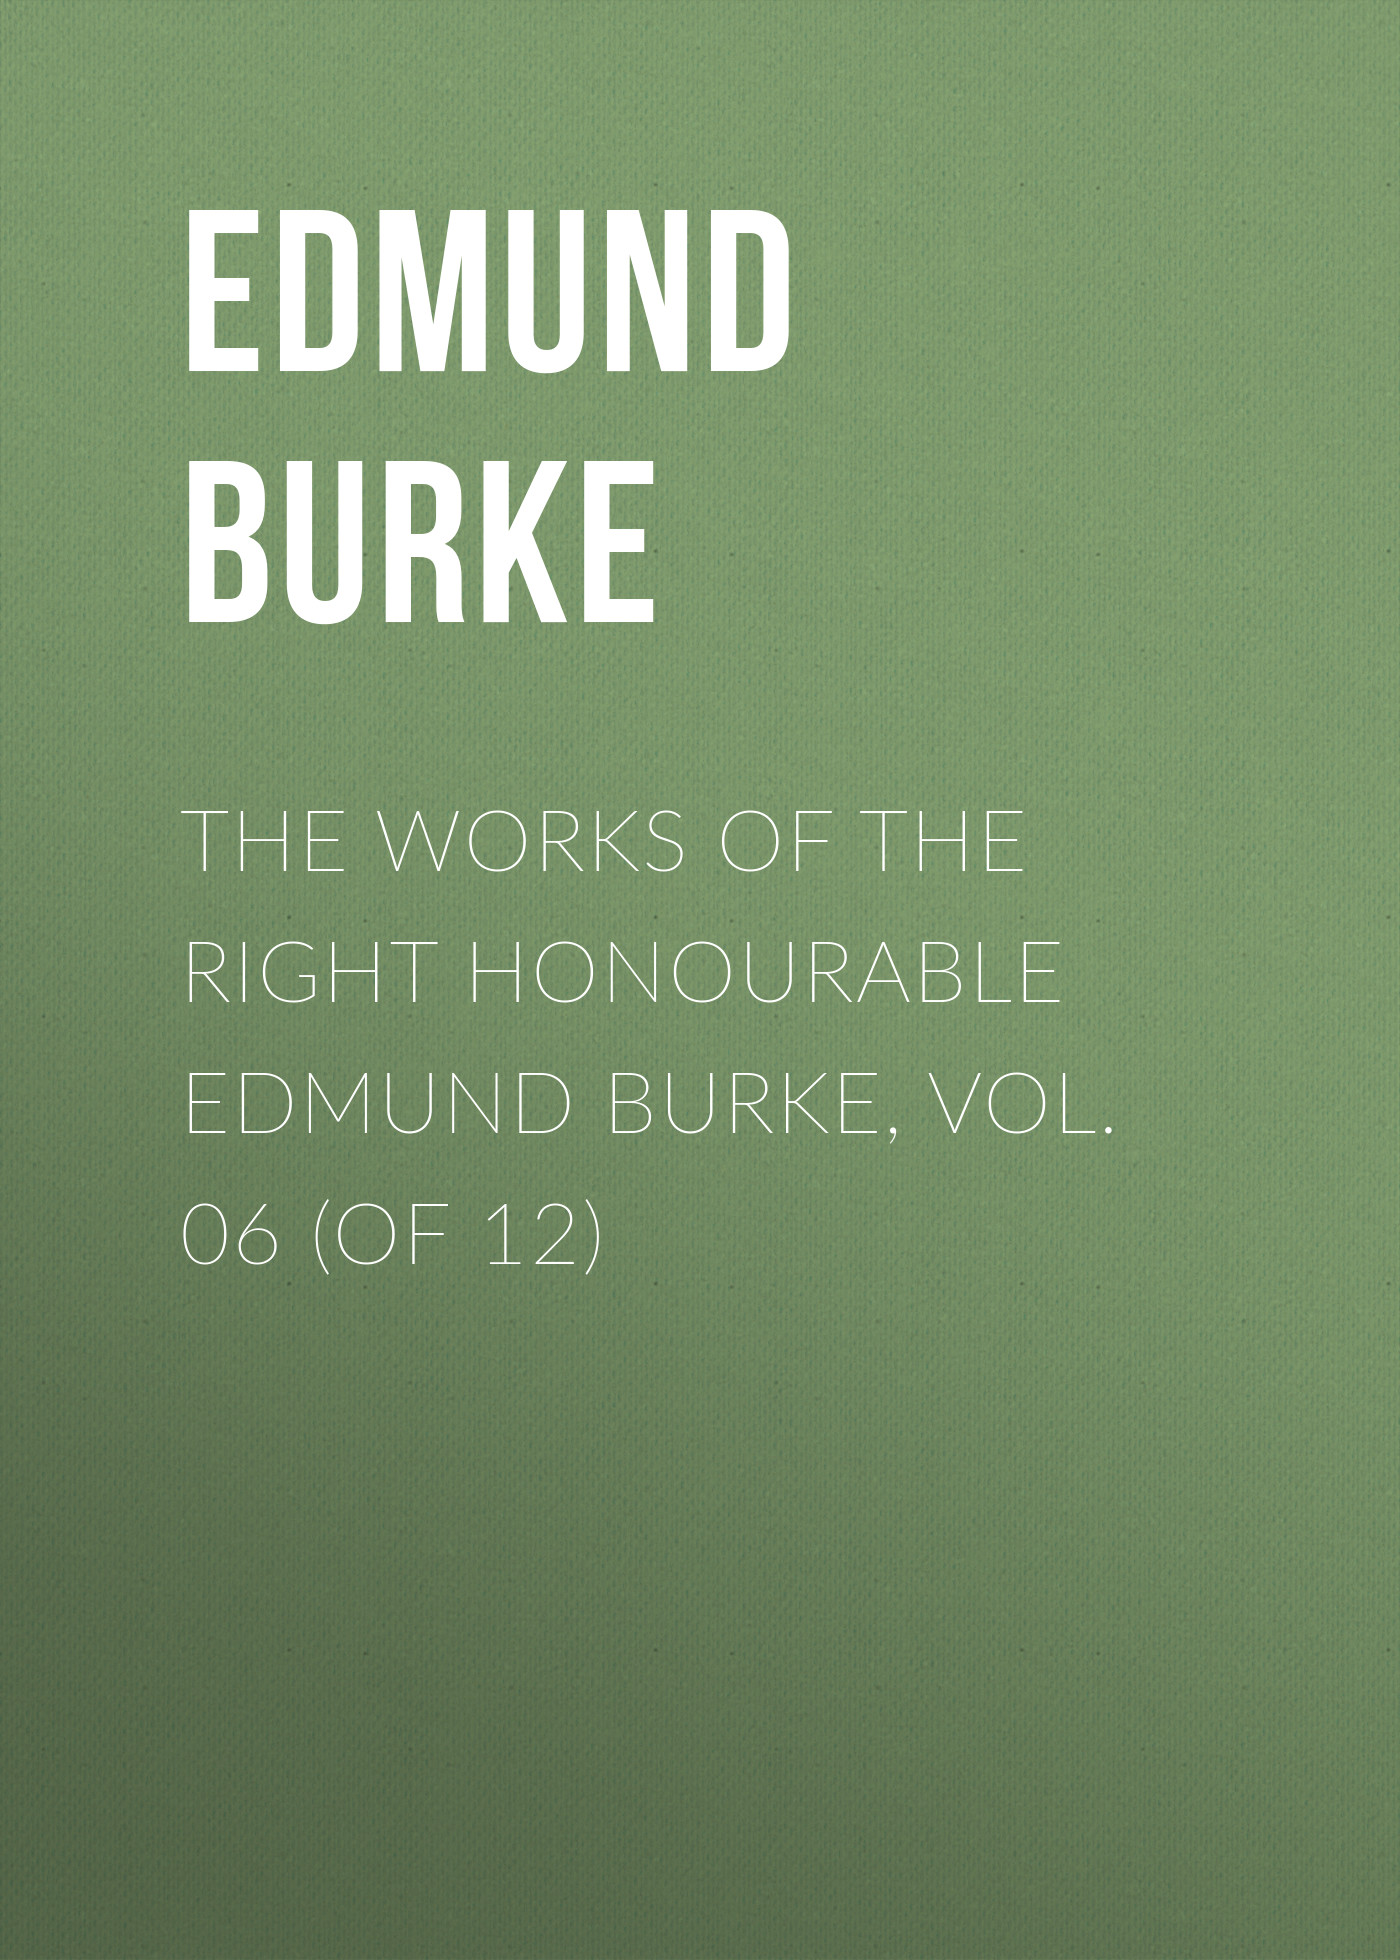 Edmund Burke The Works of the Right Honourable Edmund Burke, Vol. 06 (of 12)